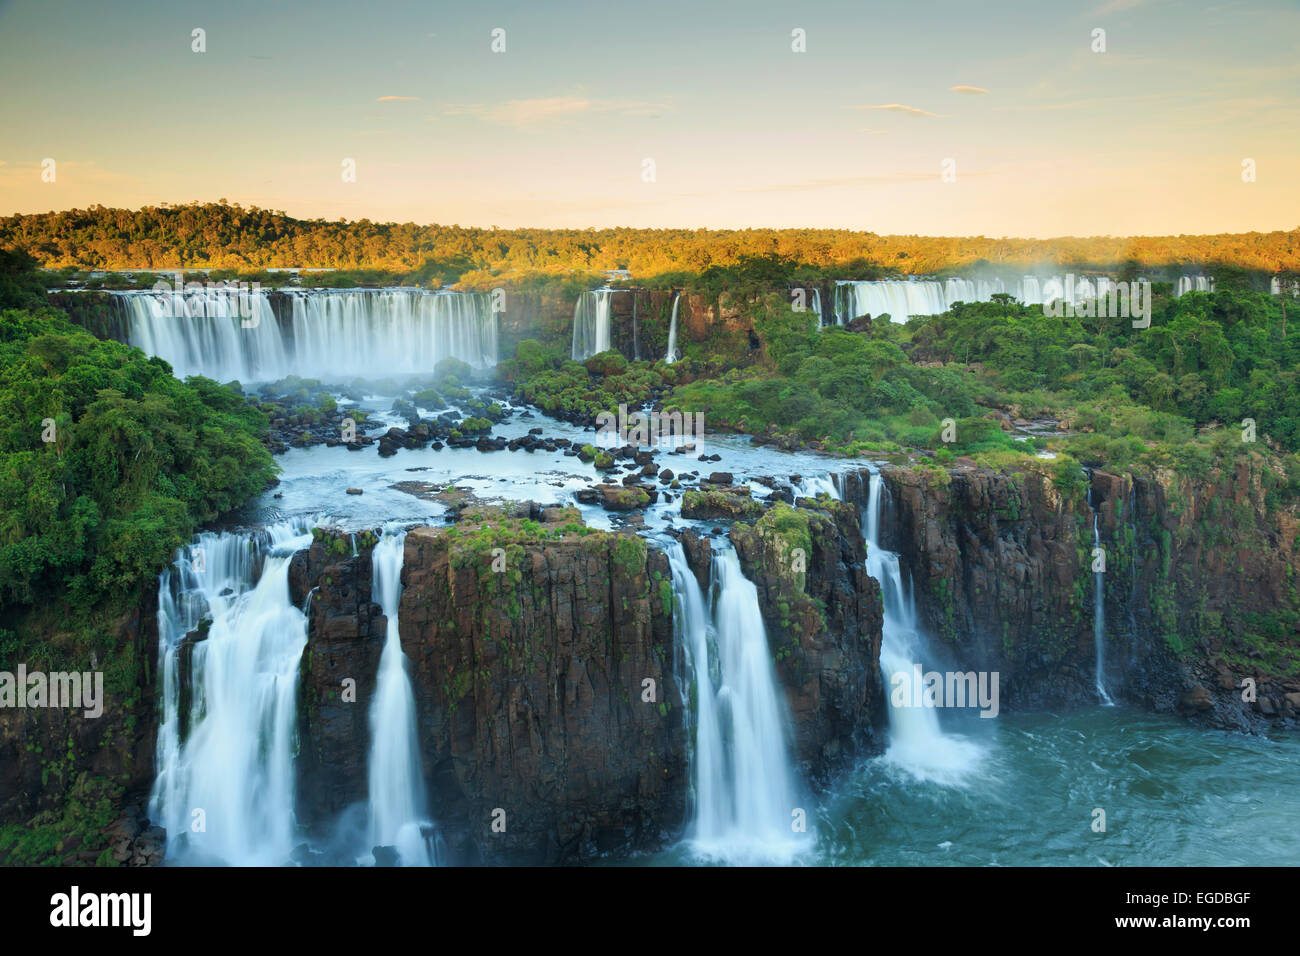 Brazil, Parana, Iguassu Falls National Park (Cataratas do Iguacu) (UNESCO Site) - Stock Image